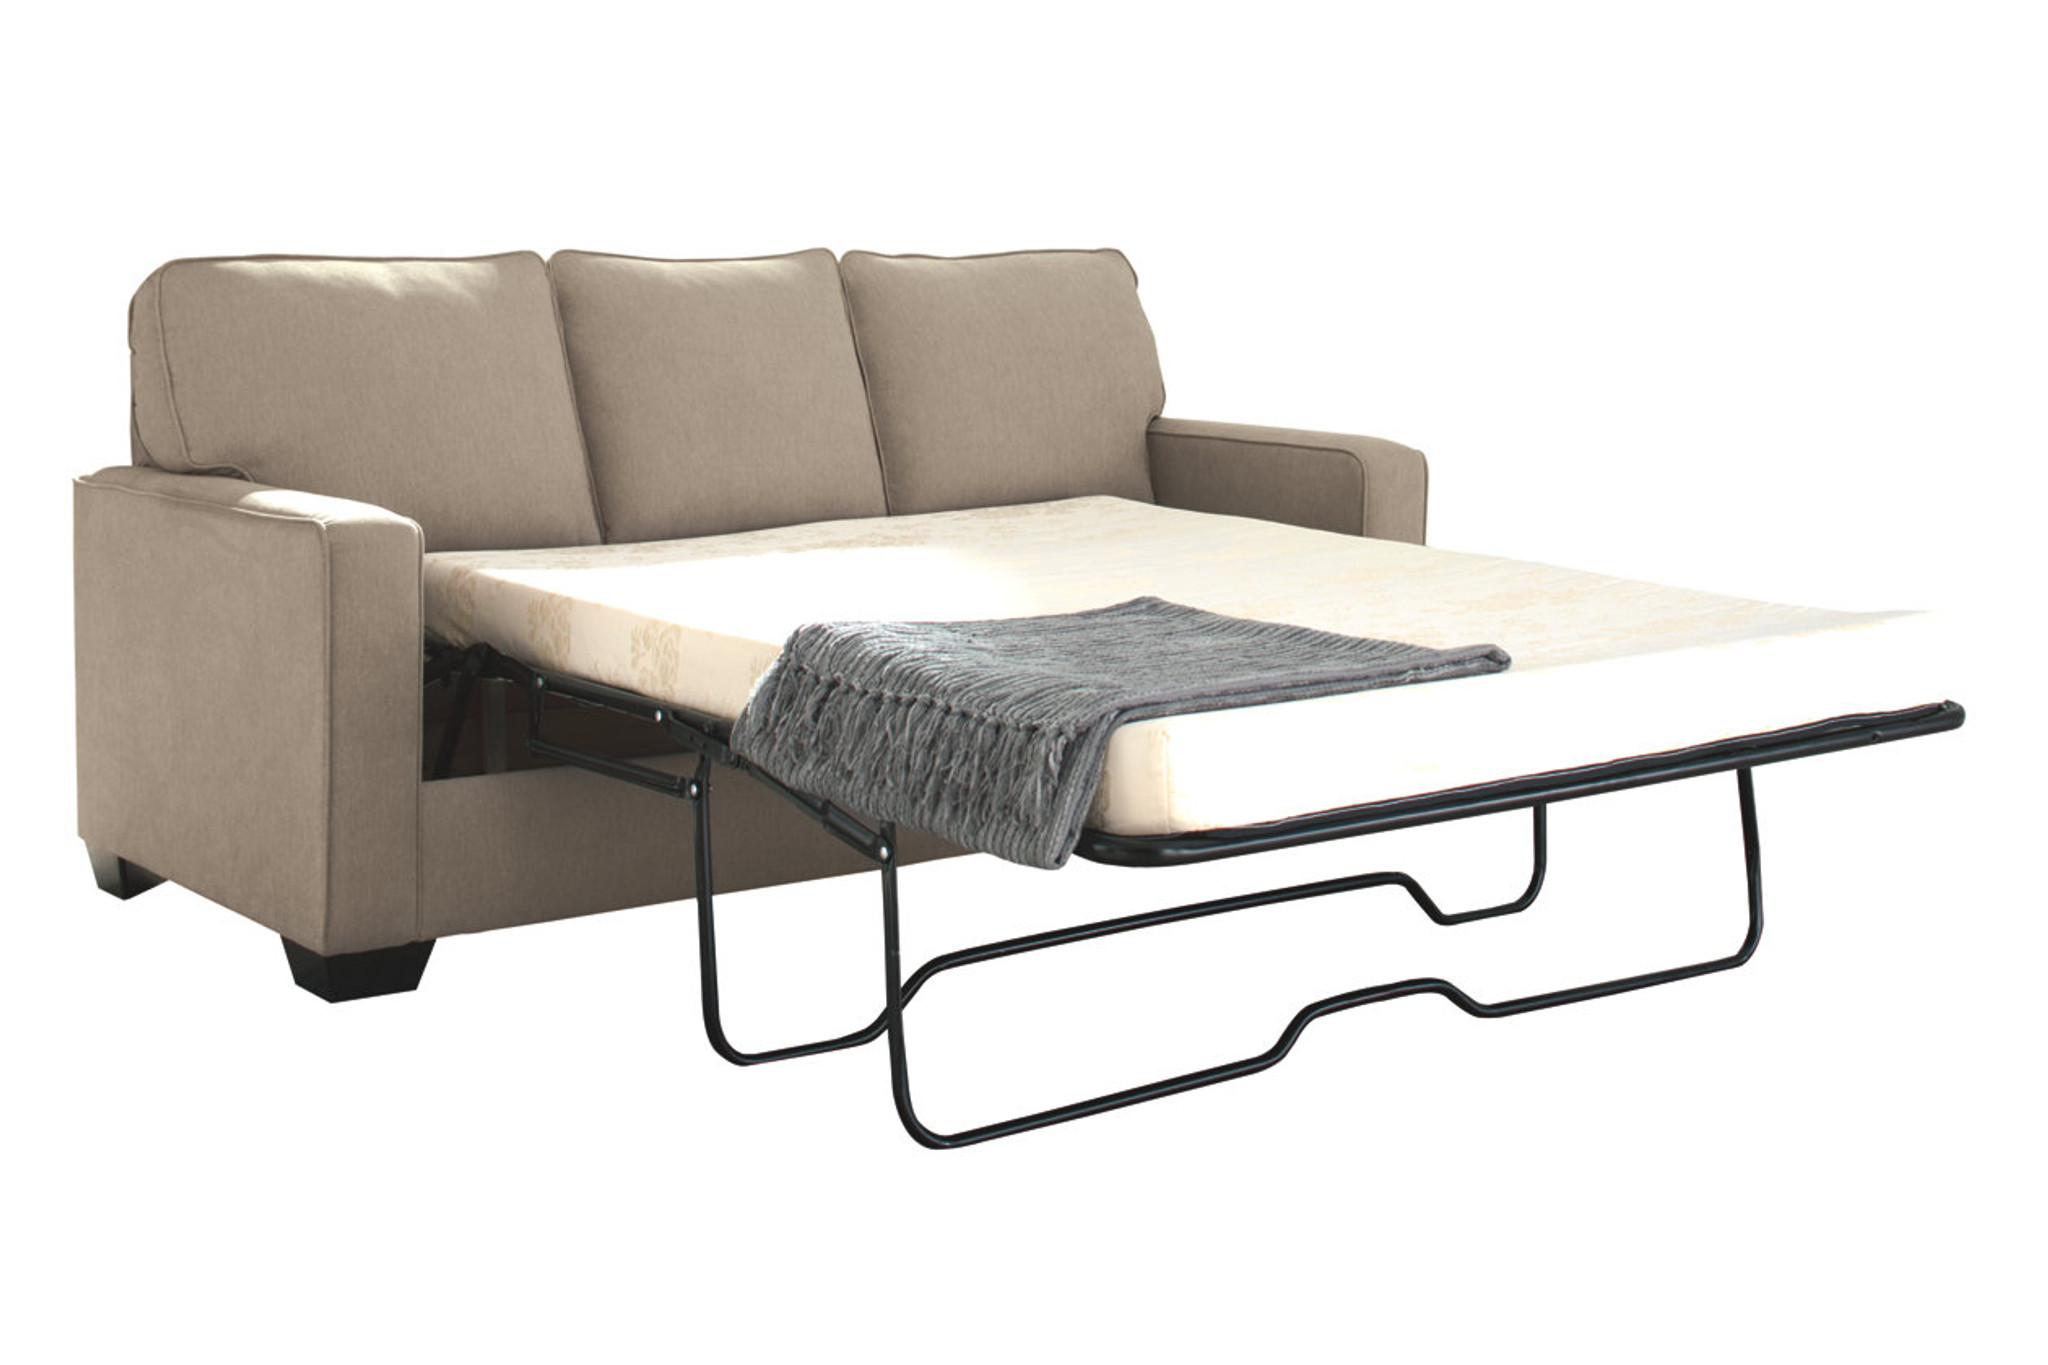 35902 36 Zeb Quartz Collection Full Sofa Sleeper Collection By Ashley Furniture